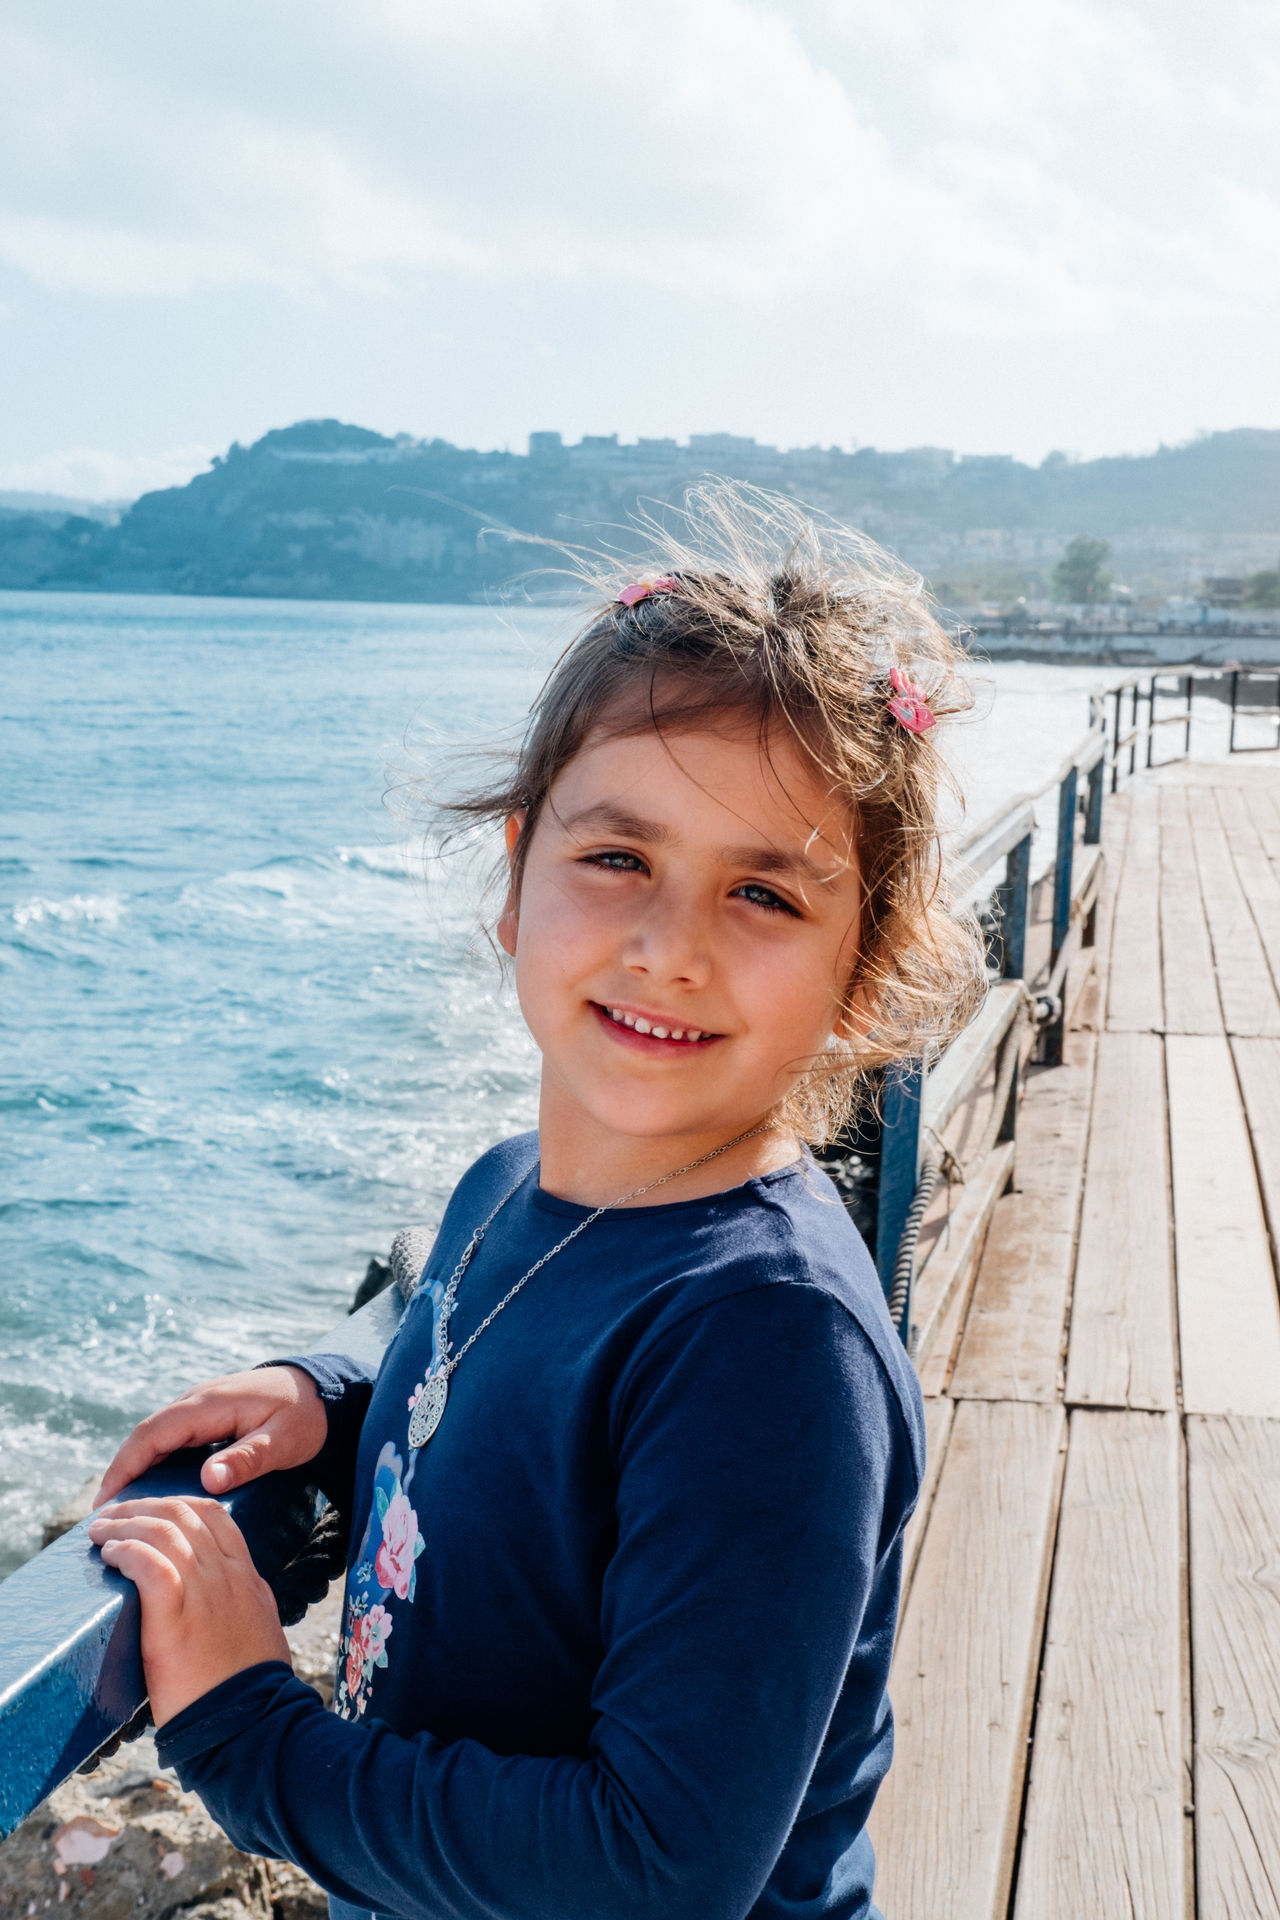 little girl candid image of happyness to be at sea Beauty In Nature Candid Portraits Child Childhood Day Elementary Age Girl Happiness Leisure Activity Lifestyles Looking At Camera Naples, Italy One Person Outdoors Portrait Promenade Real People Sea Sky Smiling Standing